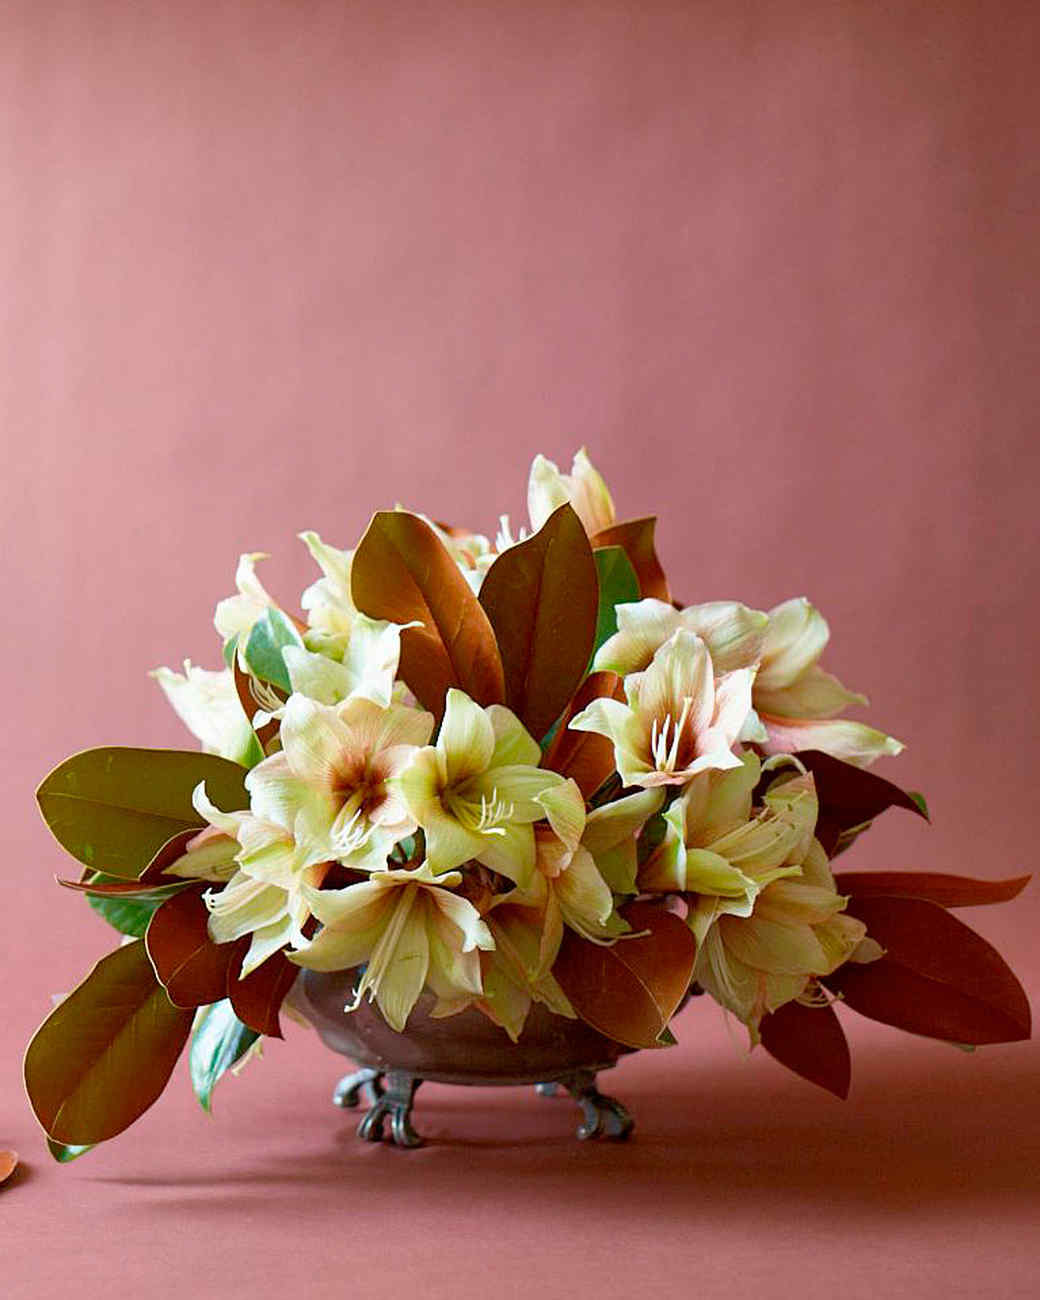 flower-arranging-ld106679-winter-arrangement.jpg